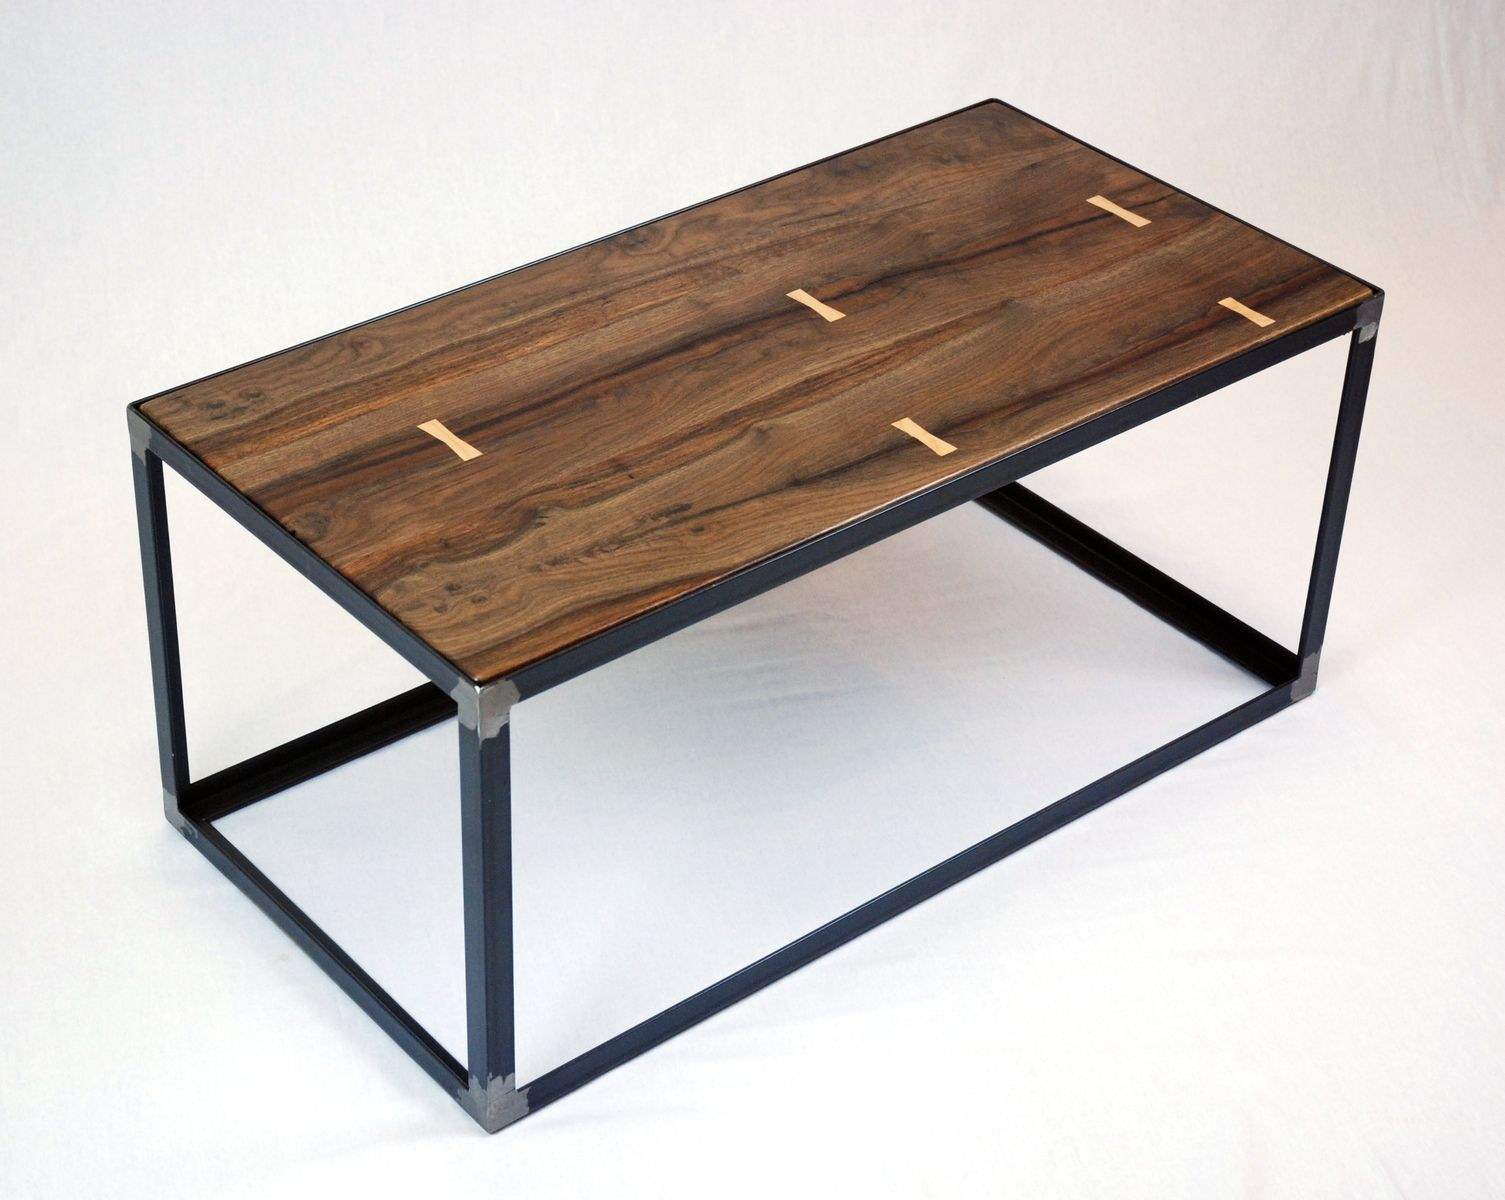 Hand Crafted Salvaged Black Walnut Industrial Coffee Table By Jonathan January